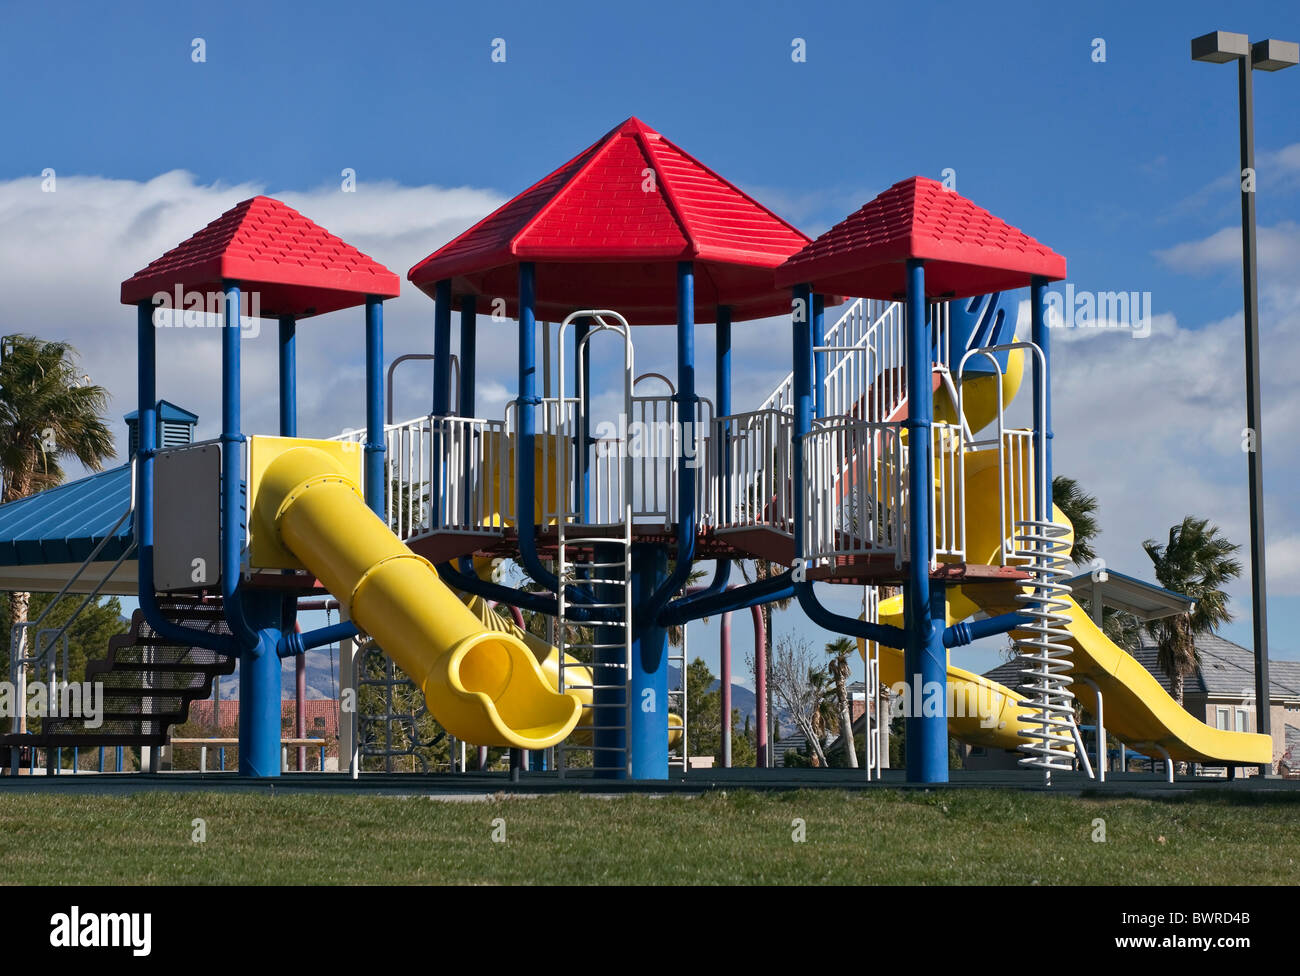 Clean, modern public park playground in the Southwestern United States. - Stock Image